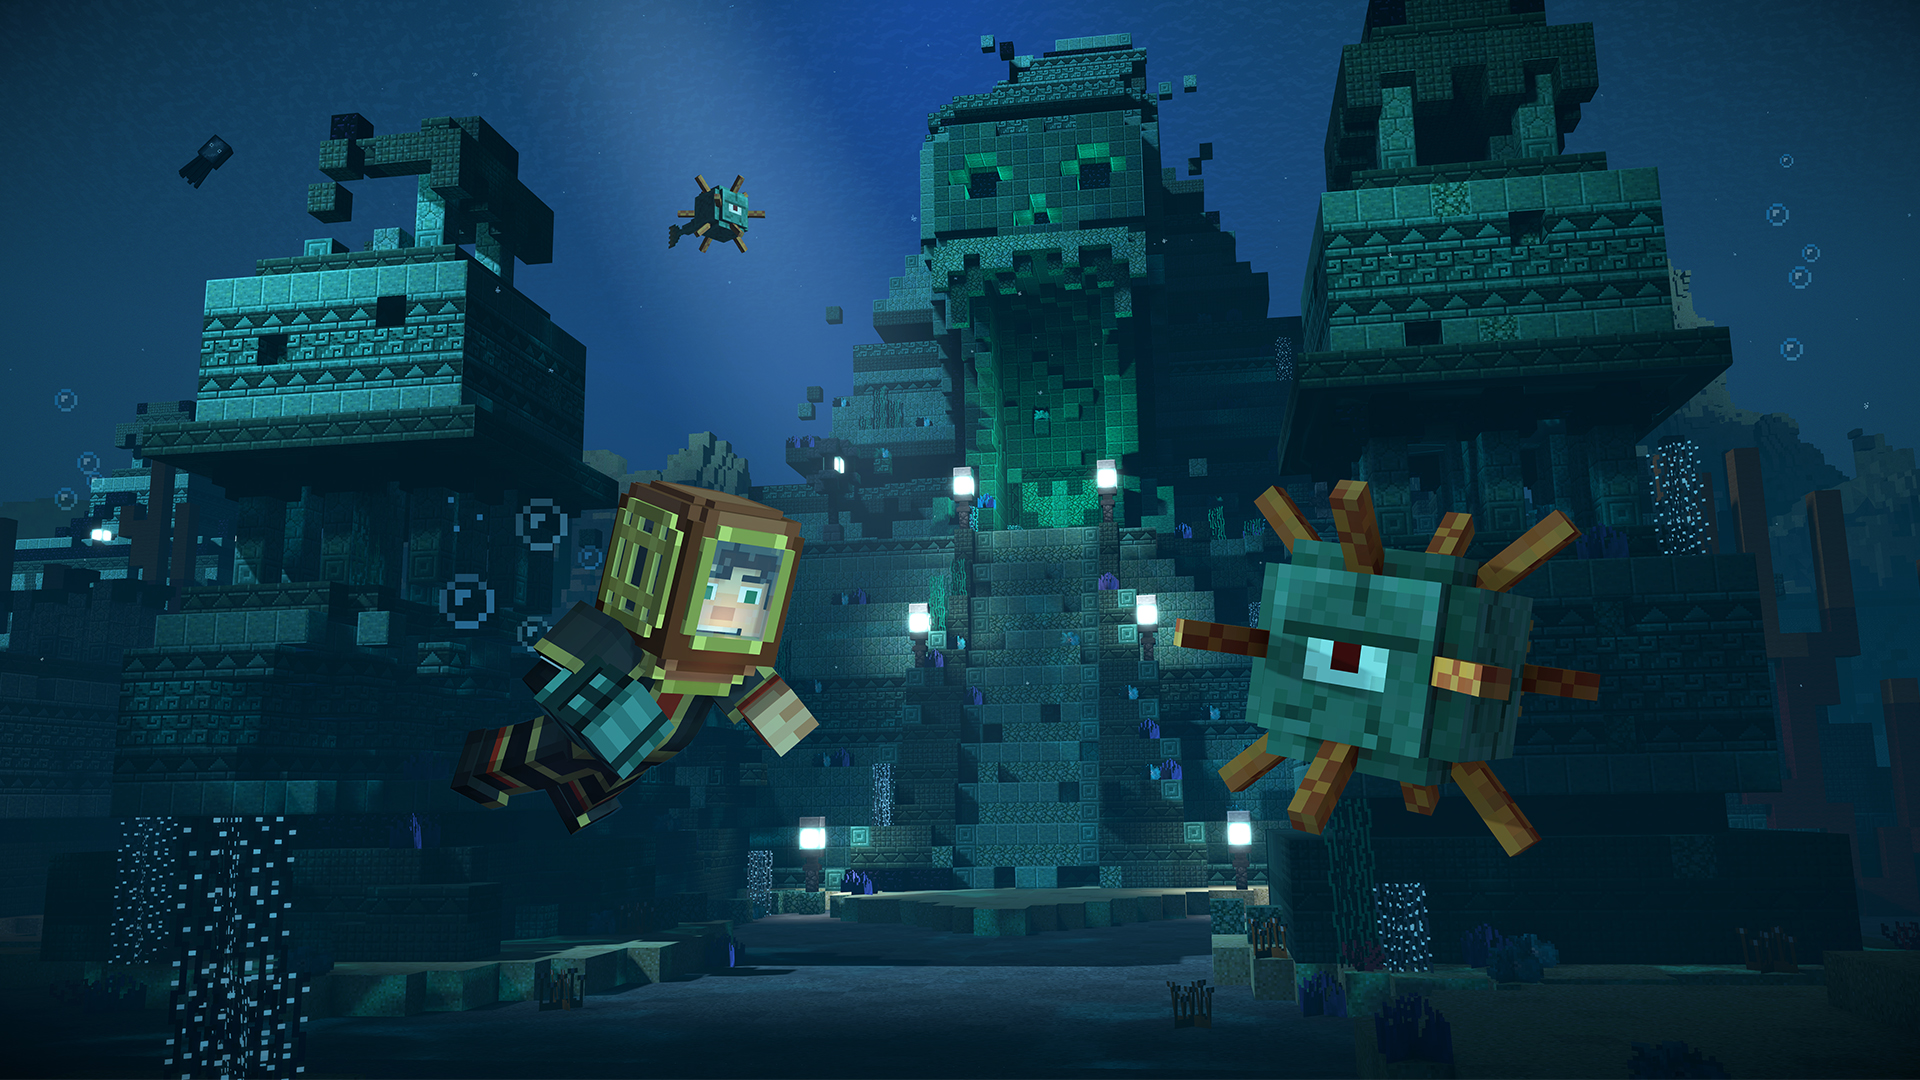 Minecraft Story Mode Season 2 Sea Temple Exterior